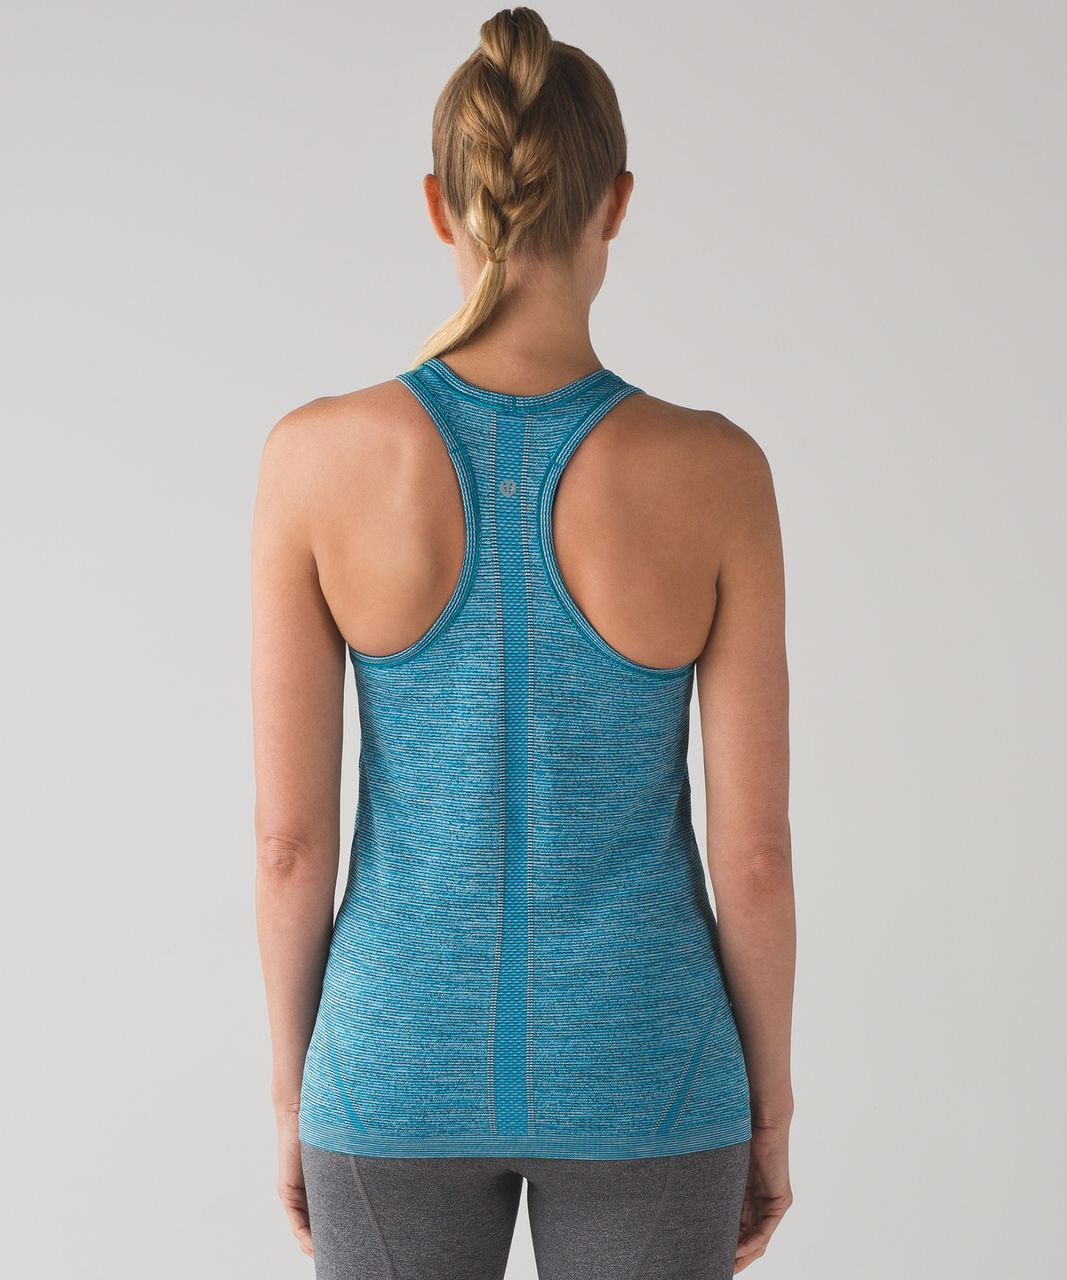 Lululemon Swiftly Tech Racerback - Indian Ocean / Black